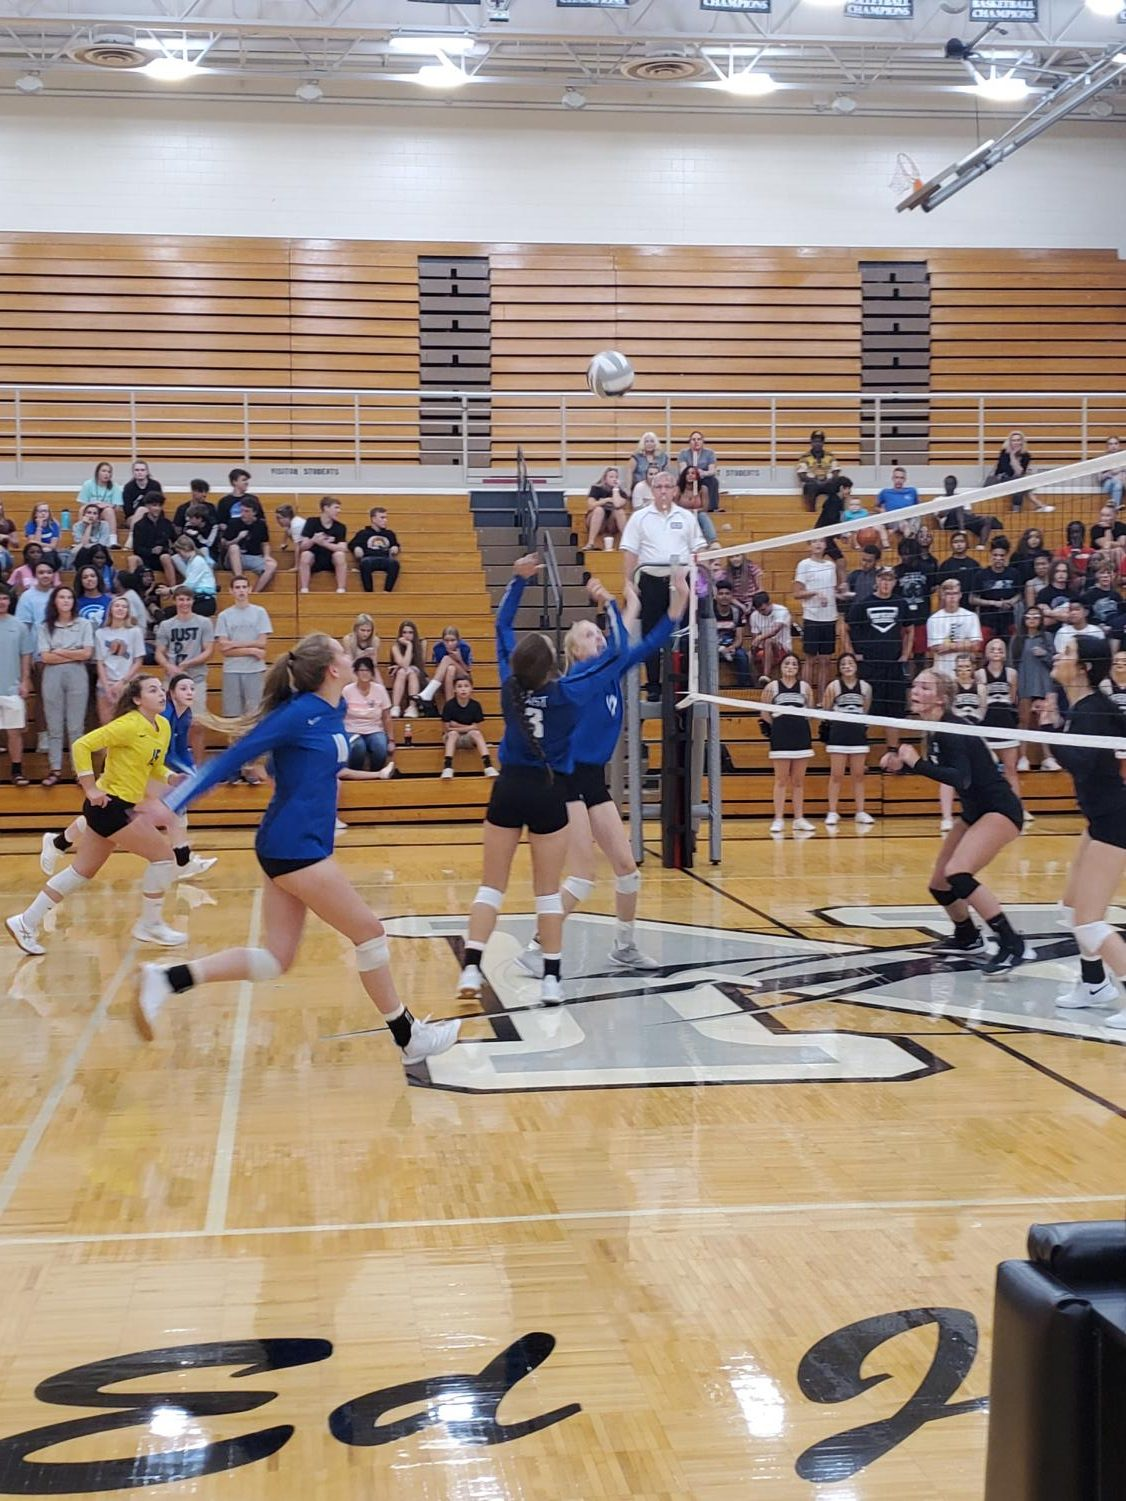 Annalee Ventling-Brown, Julia Holz, and Aleksey Betancur work together to score a point in the first set against Northeast.